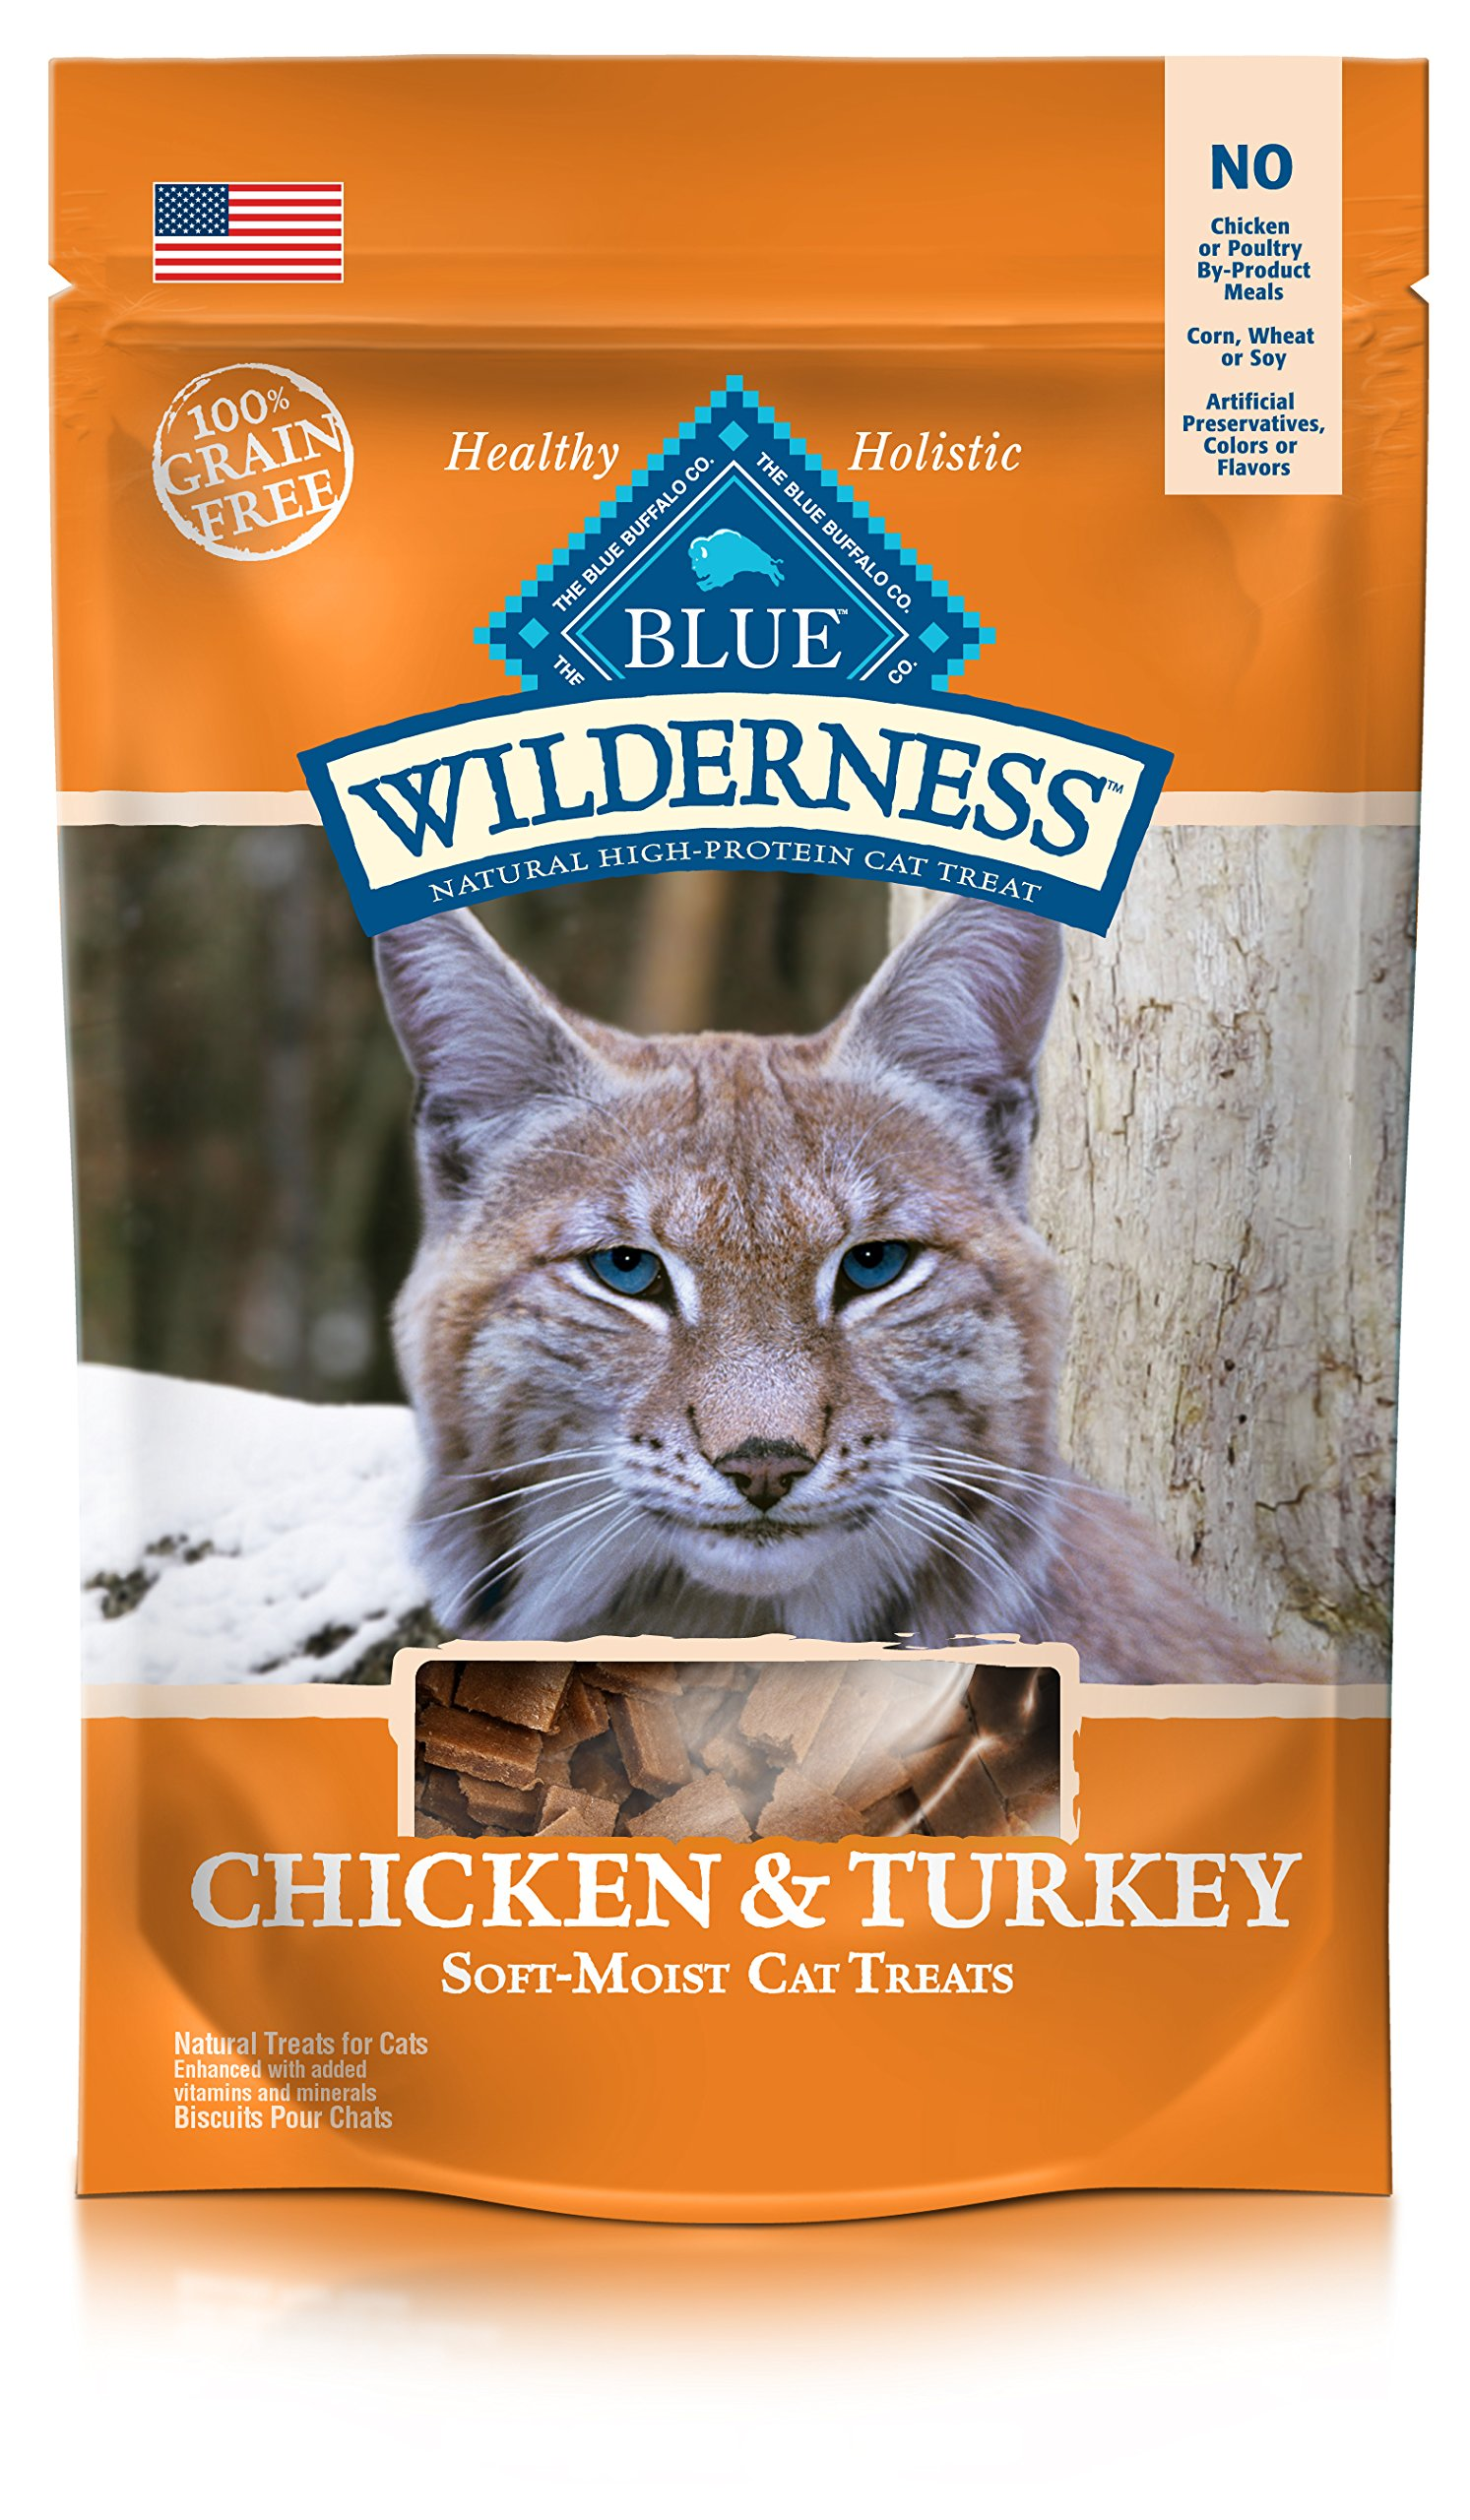 BLUE Wilderness Grain-Free Soft-Moist Cat Treats Chicken and Turkey 2 oz